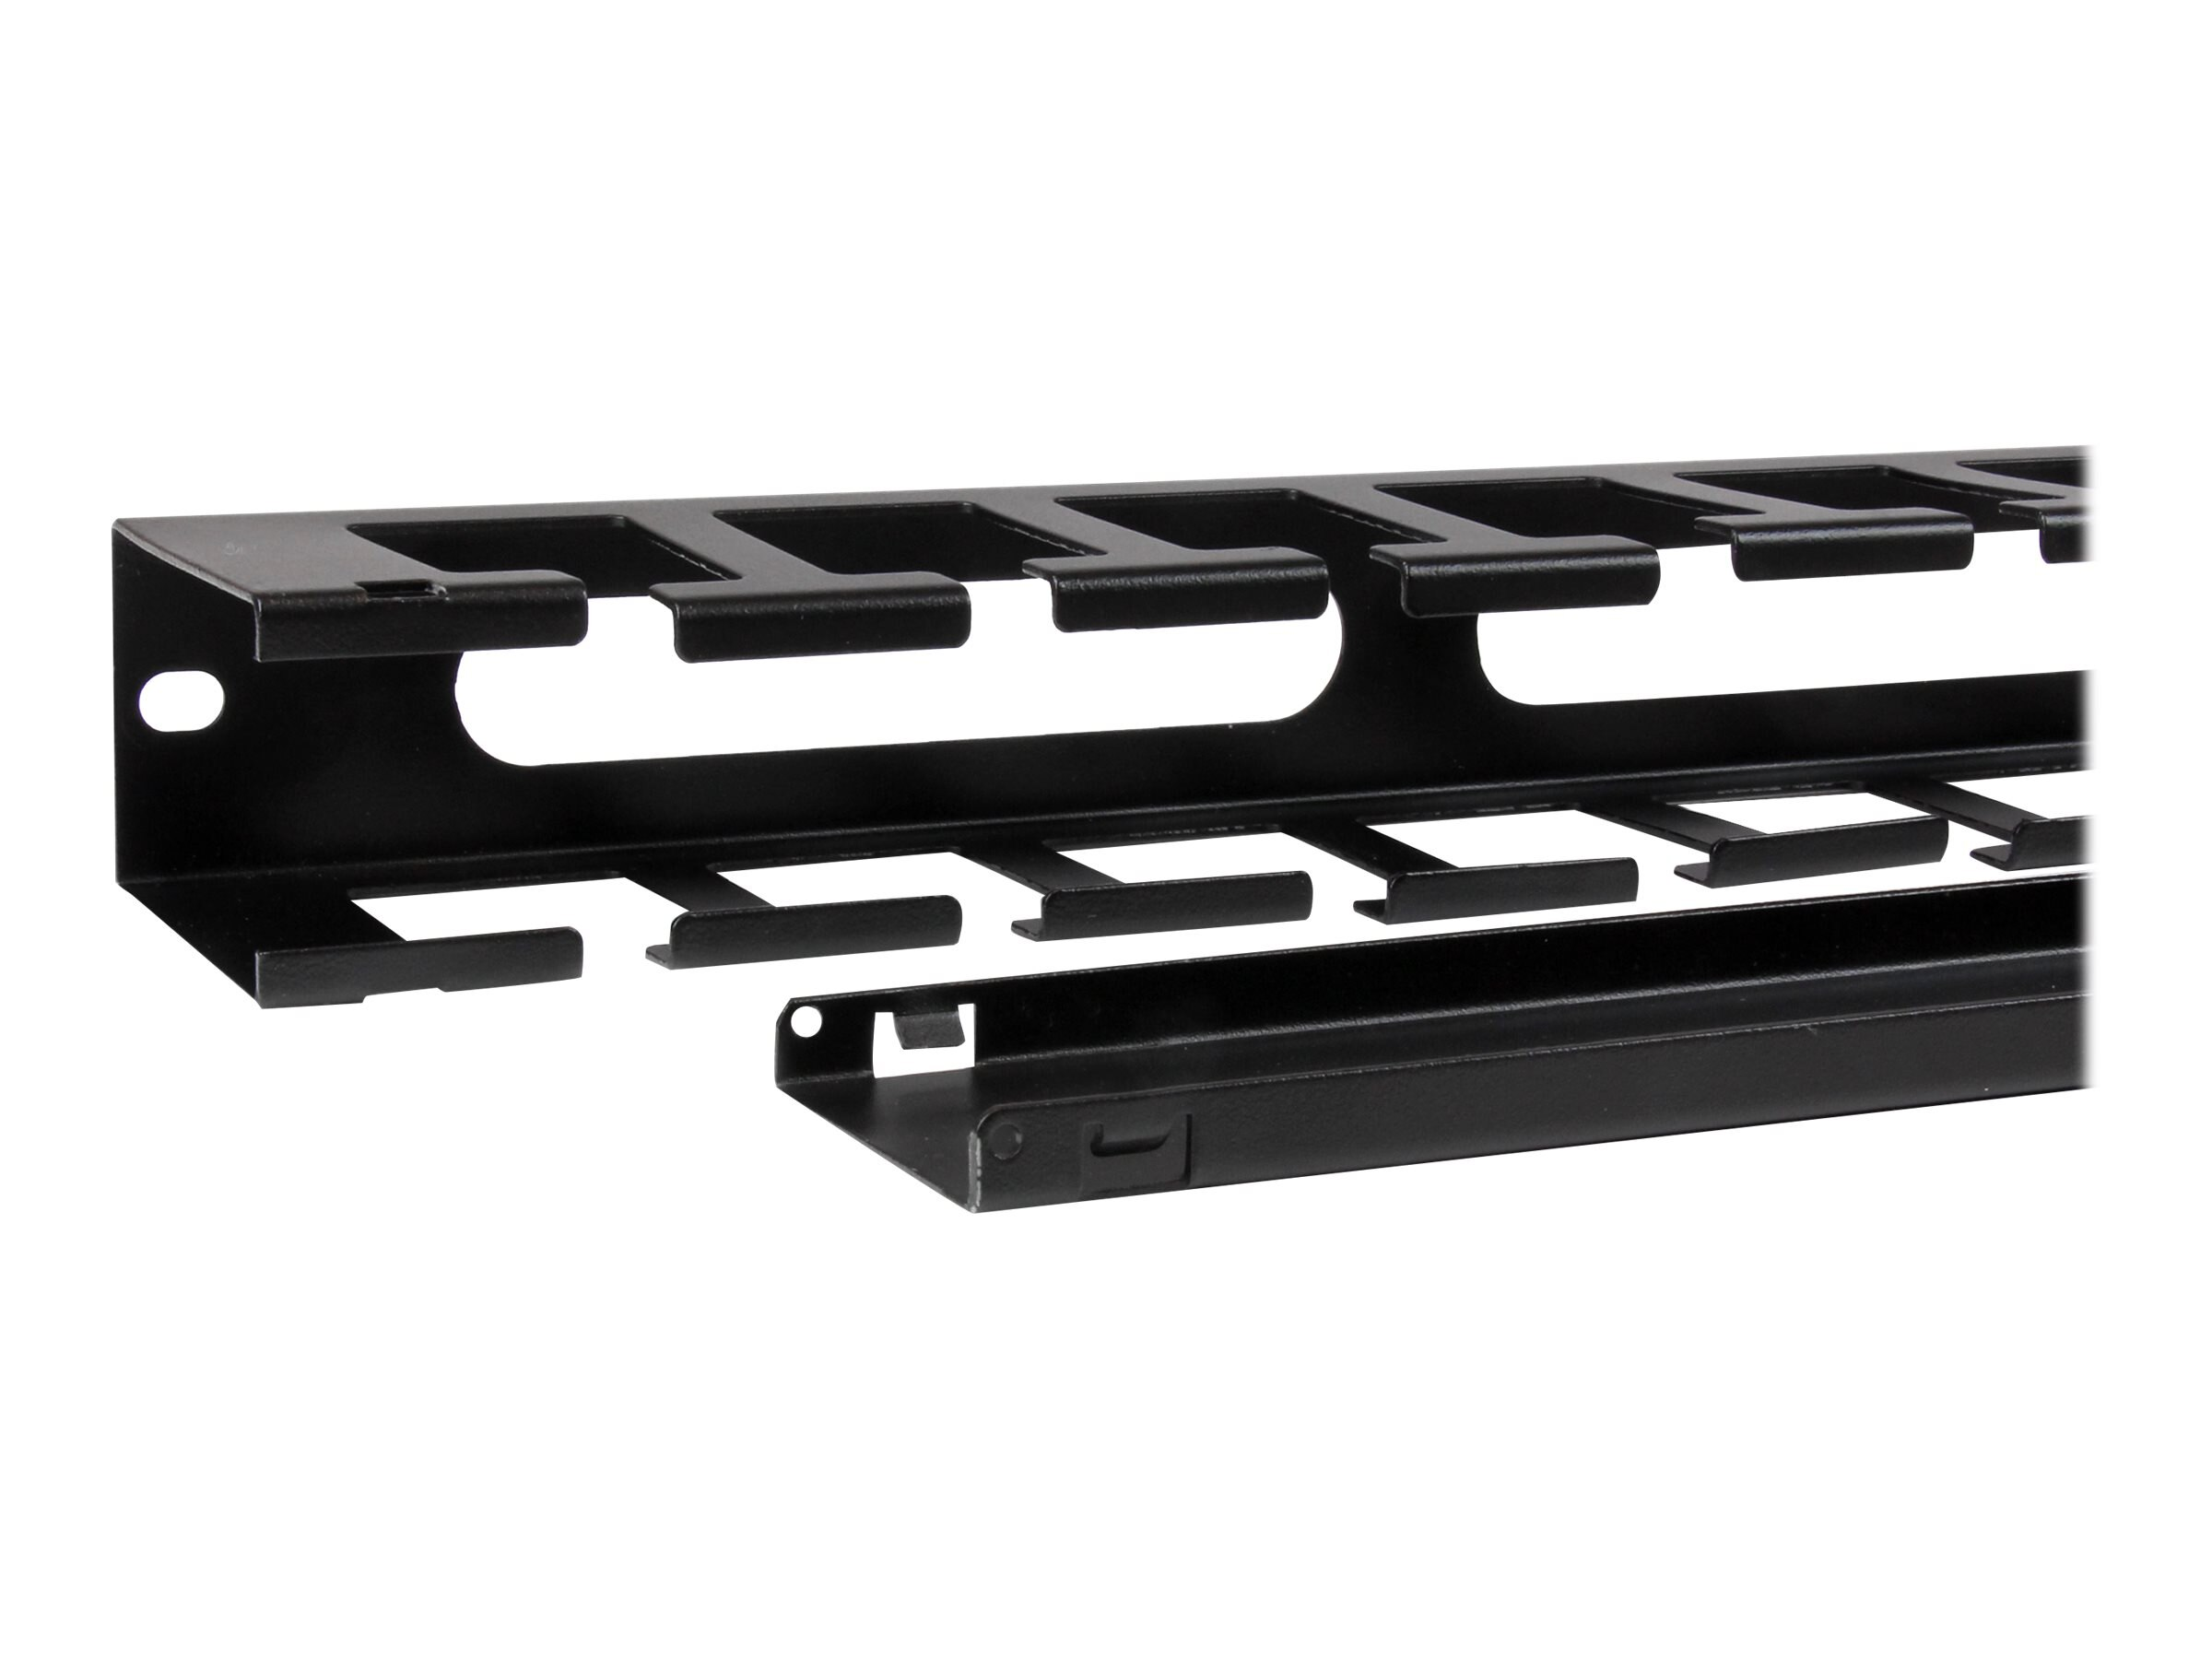 StarTech.com 1U Horizontal Finger Duct Rack Cable Management Panel with Cover, CMDUCT1UX